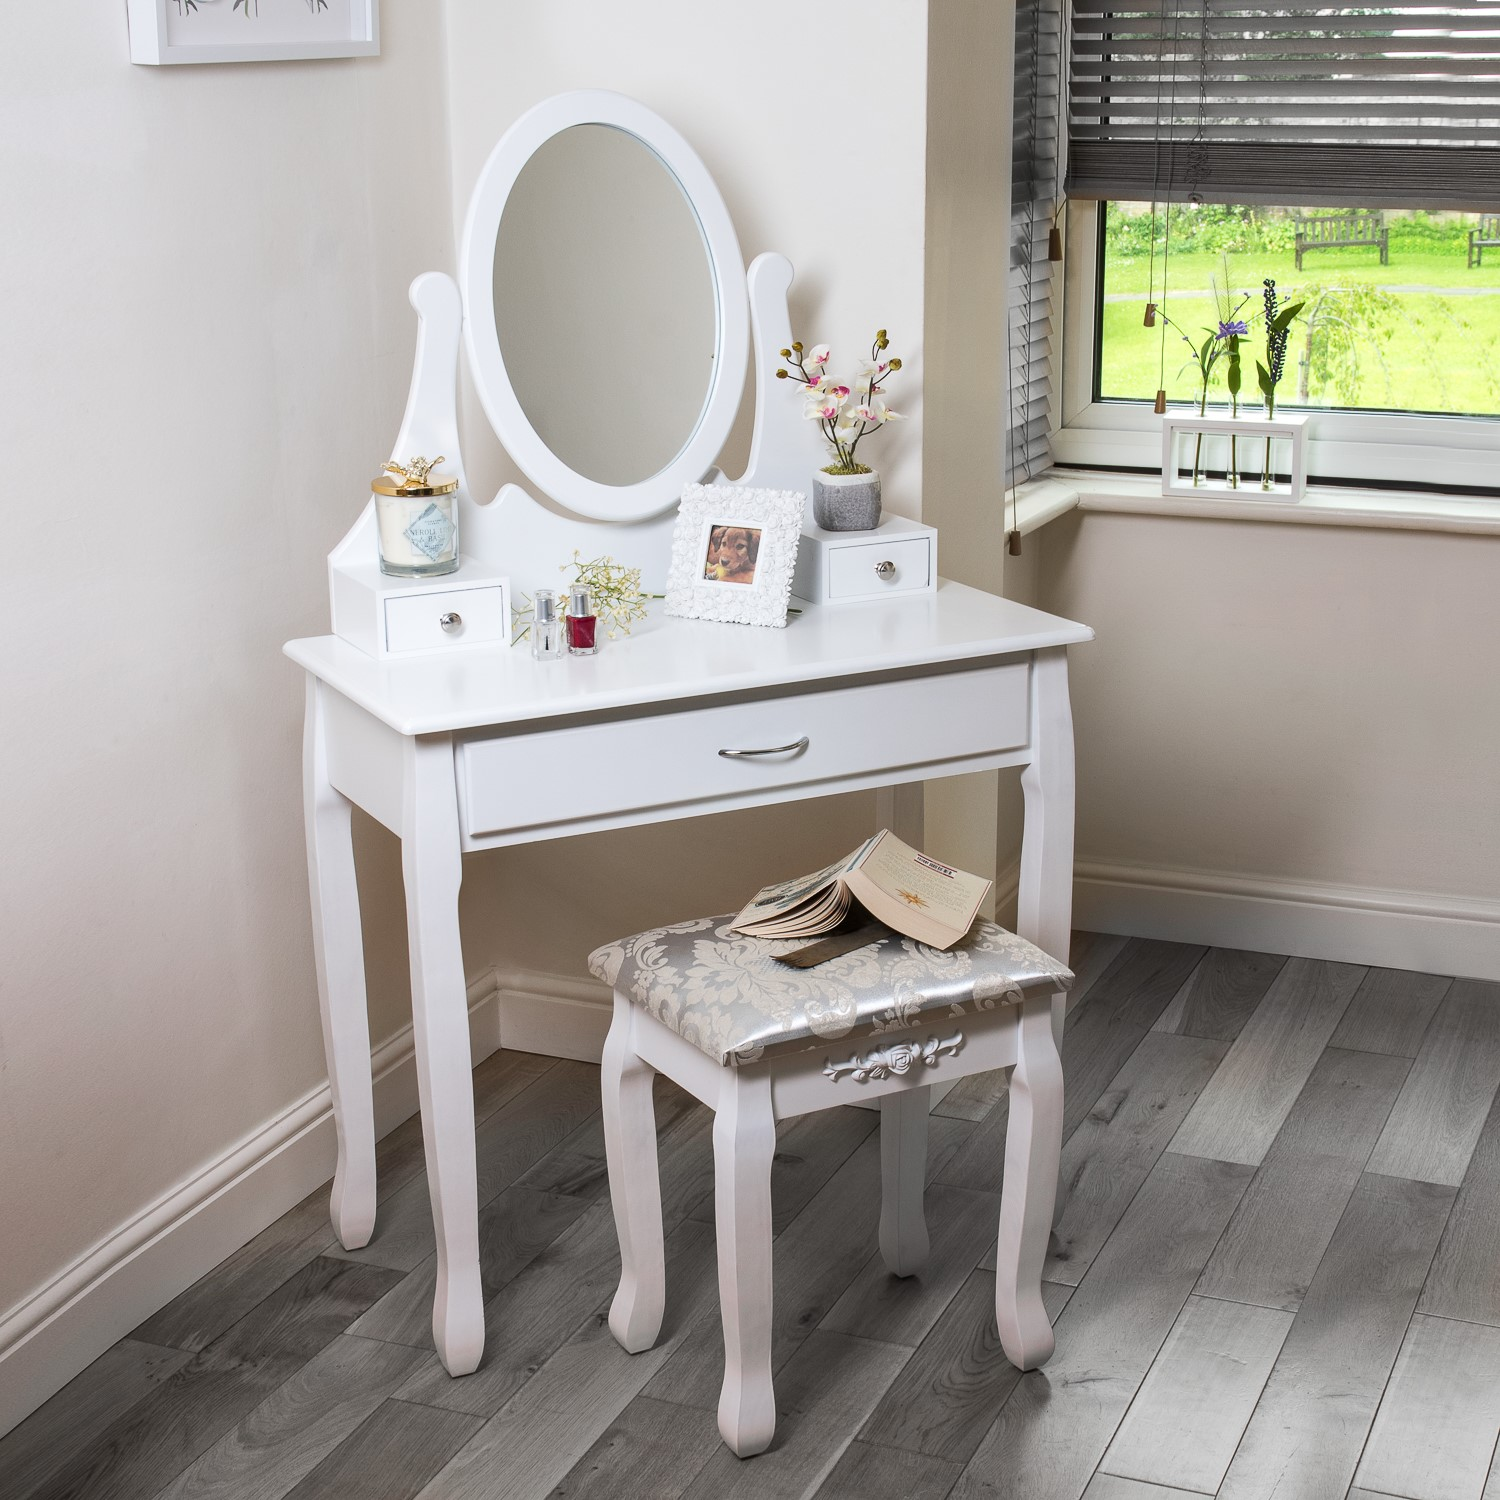 Vanity Desk With Oval Mirror And Stool  Home Treats UK